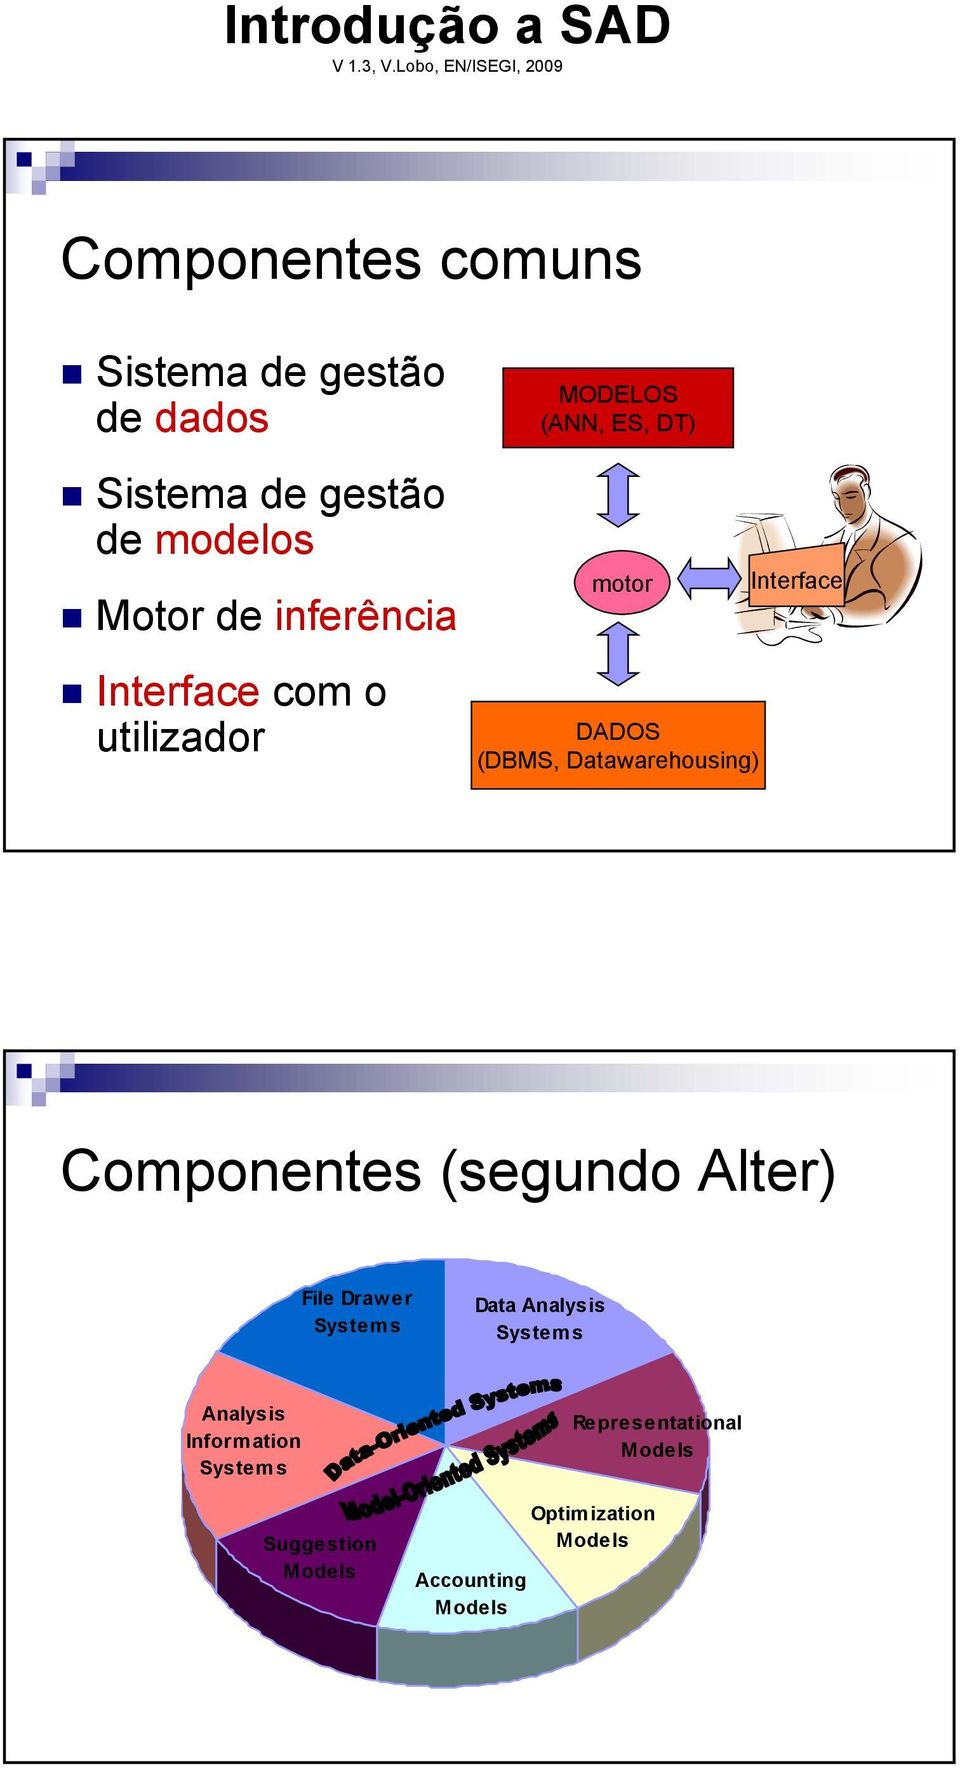 Datawarehousing) Interface Componentes (segundo Alter) File Draw er Systems Data Analysis